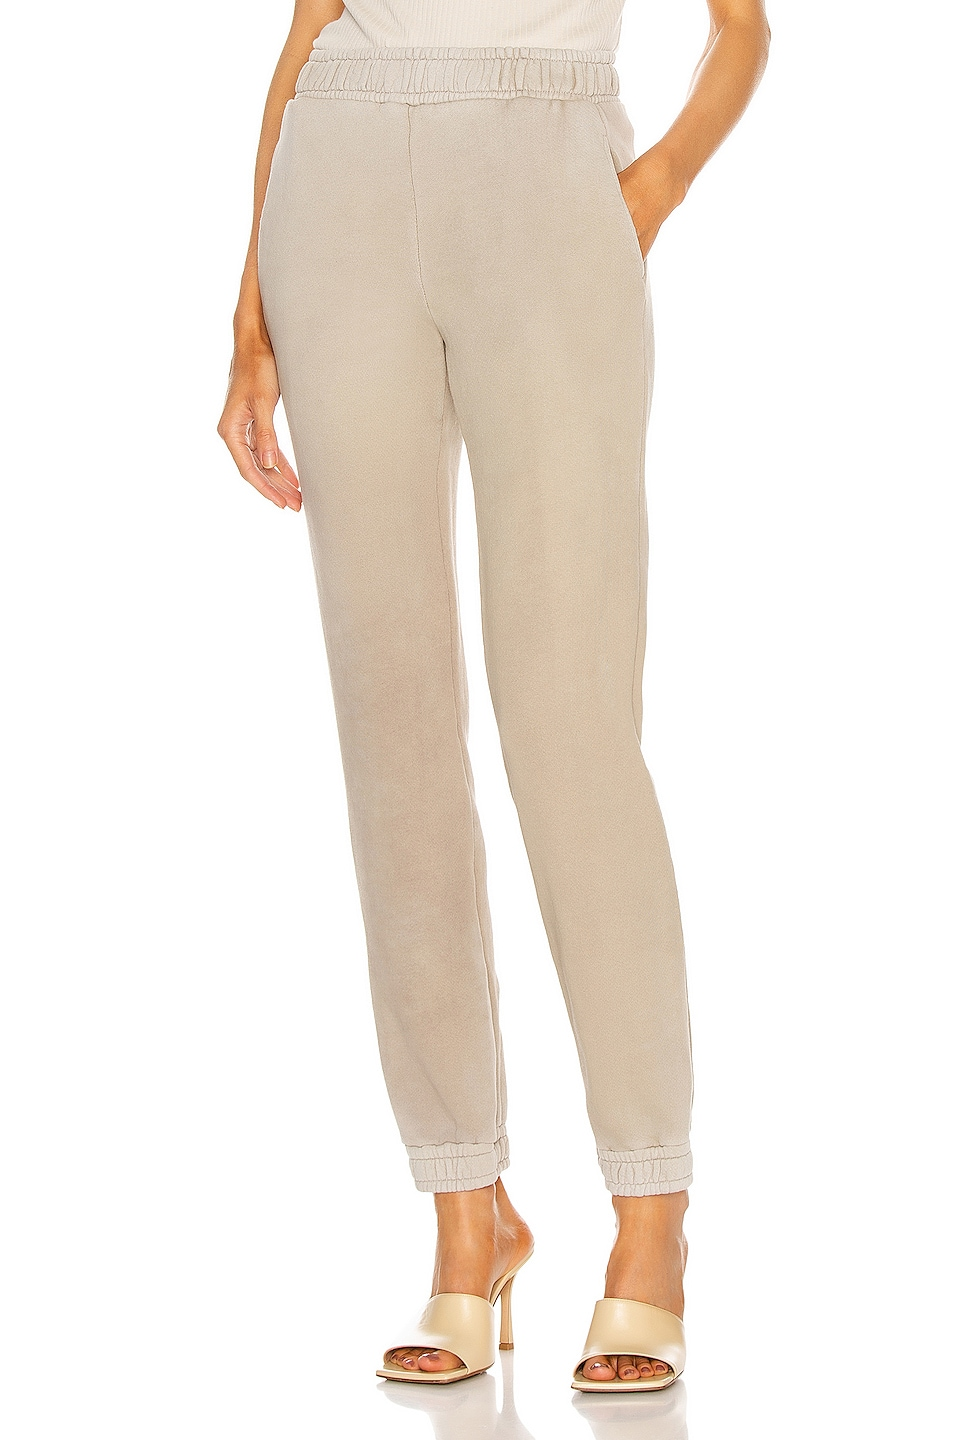 Image 1 of COTTON CITIZEN Brooklyn Sweatpant in Vintage Sand Dollar